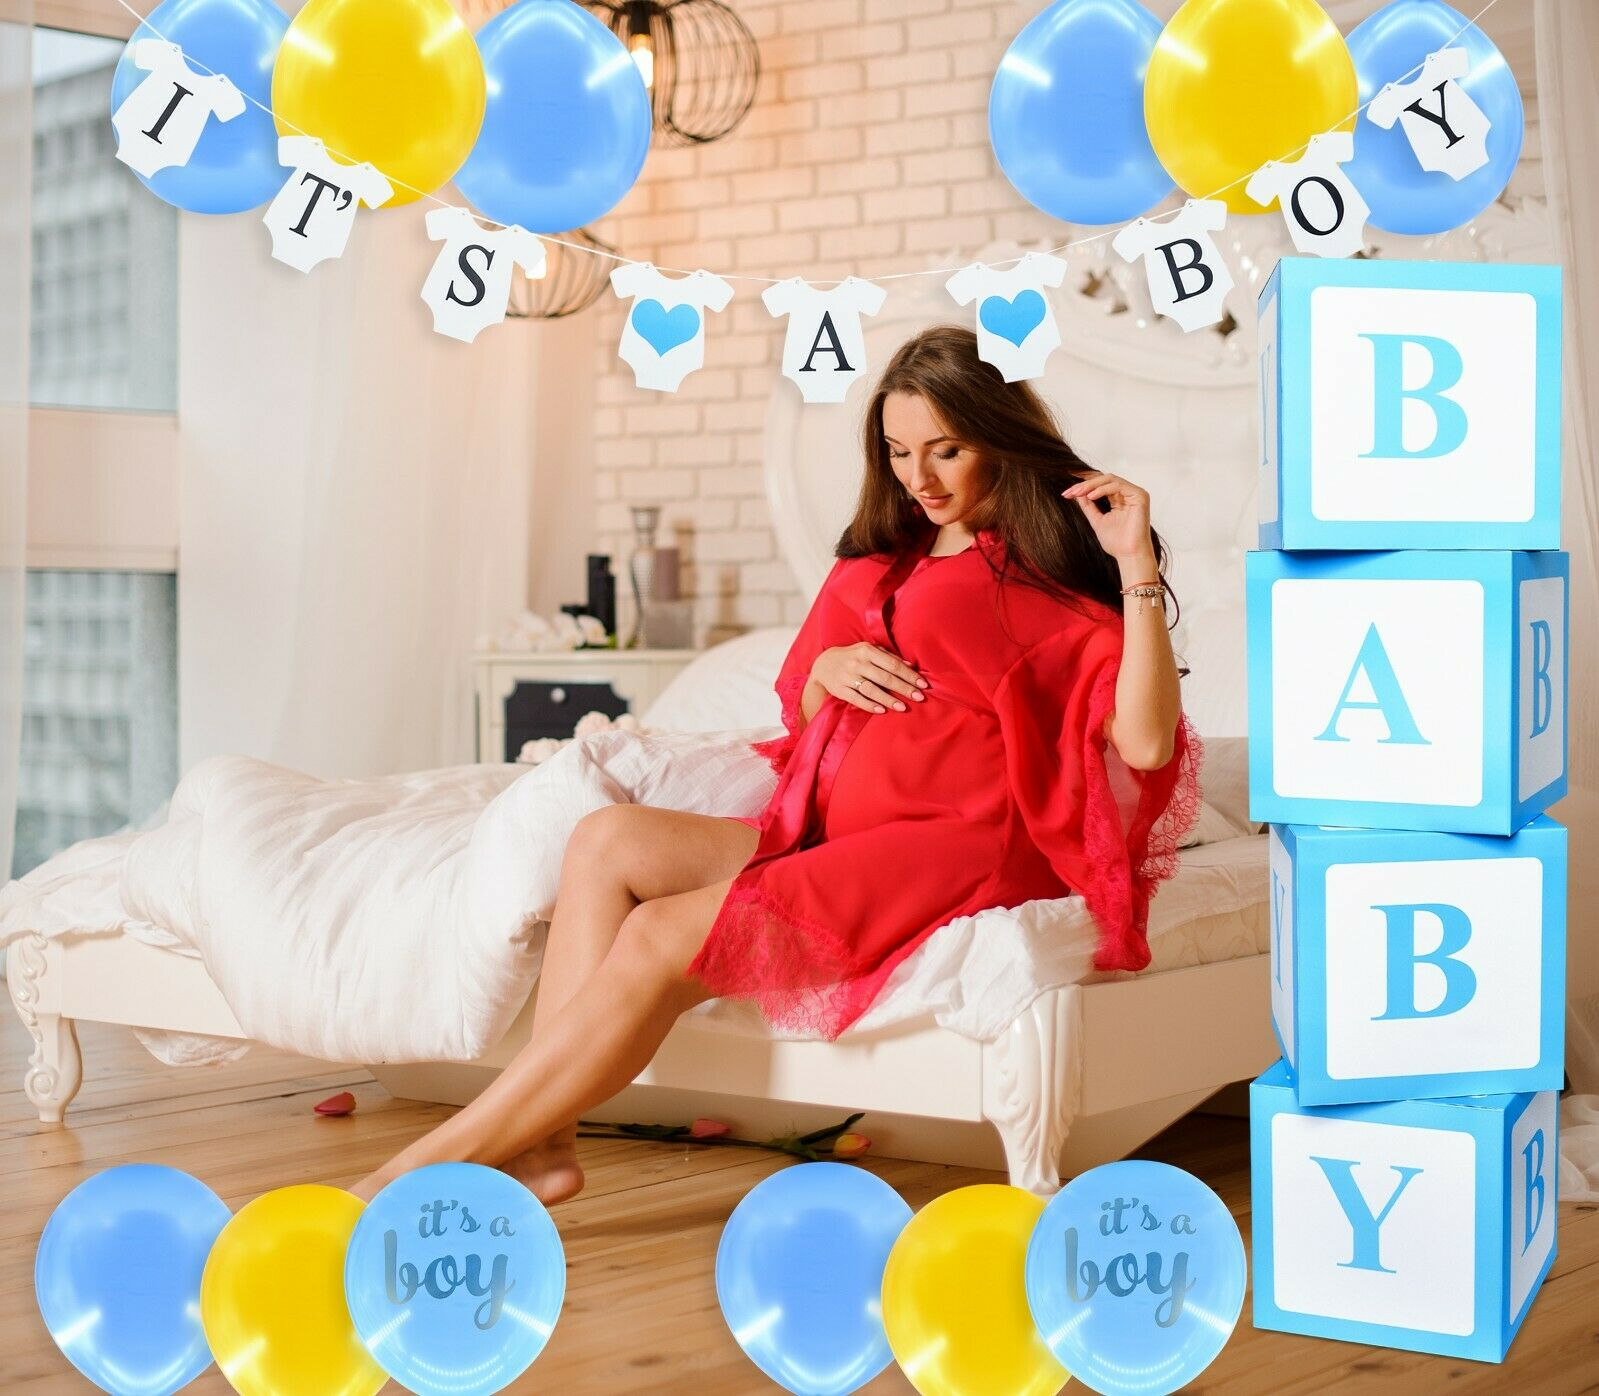 It's a Boy Baby Shower Decoration Blue for Boy Its a Boy Decoration Elegant Greeting Cards & Party Supply